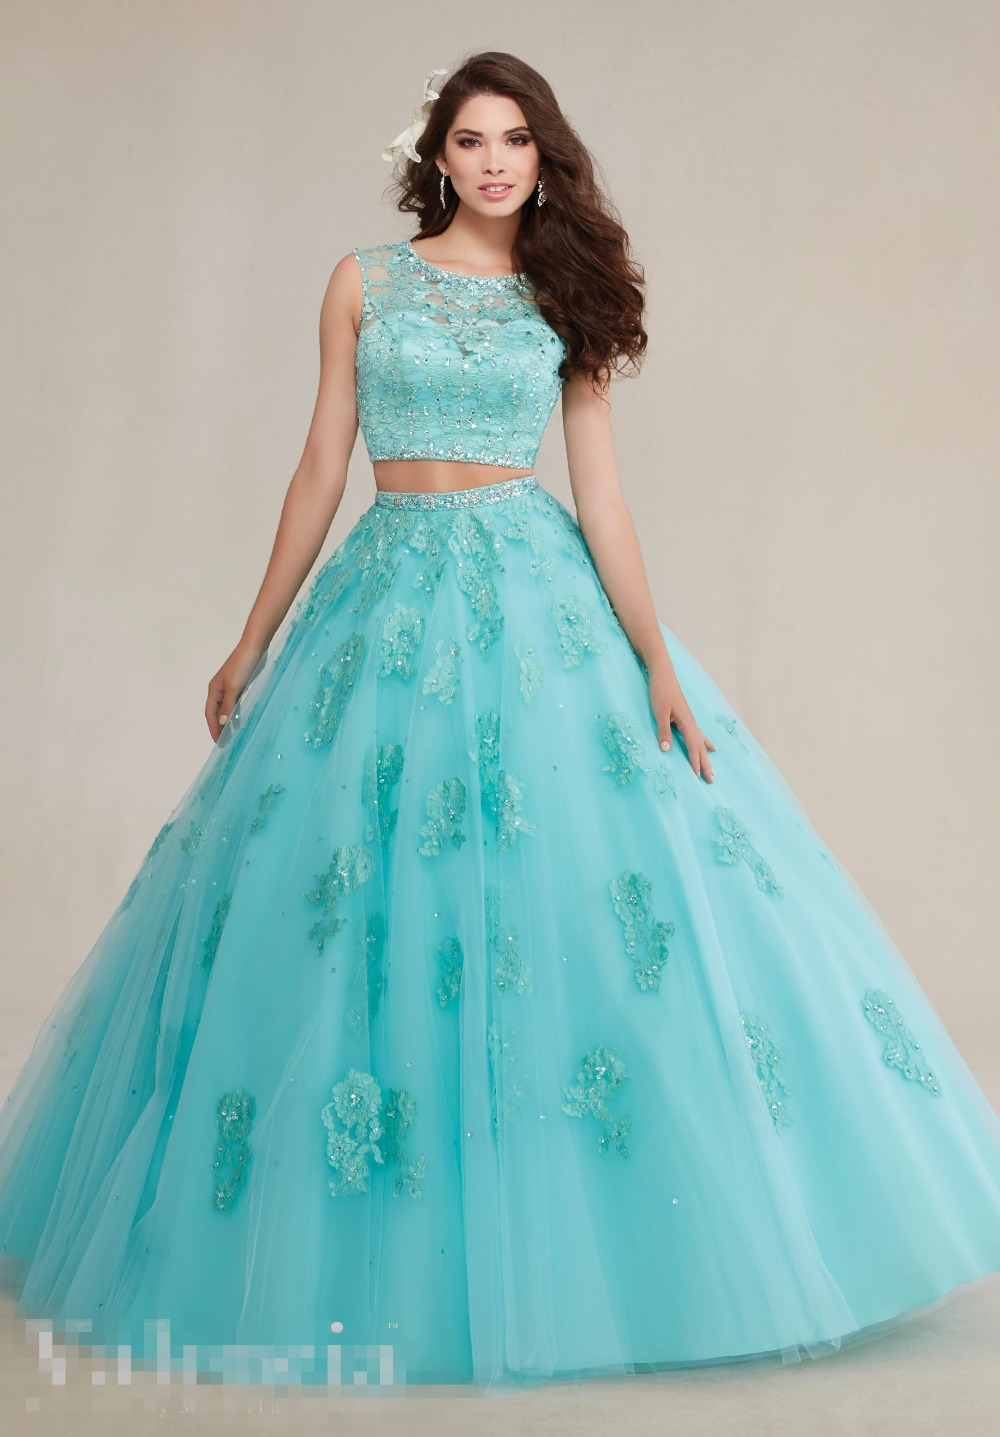 Awesome Dresses For Sweet 15 Party Elaboration - All Wedding Dresses ...